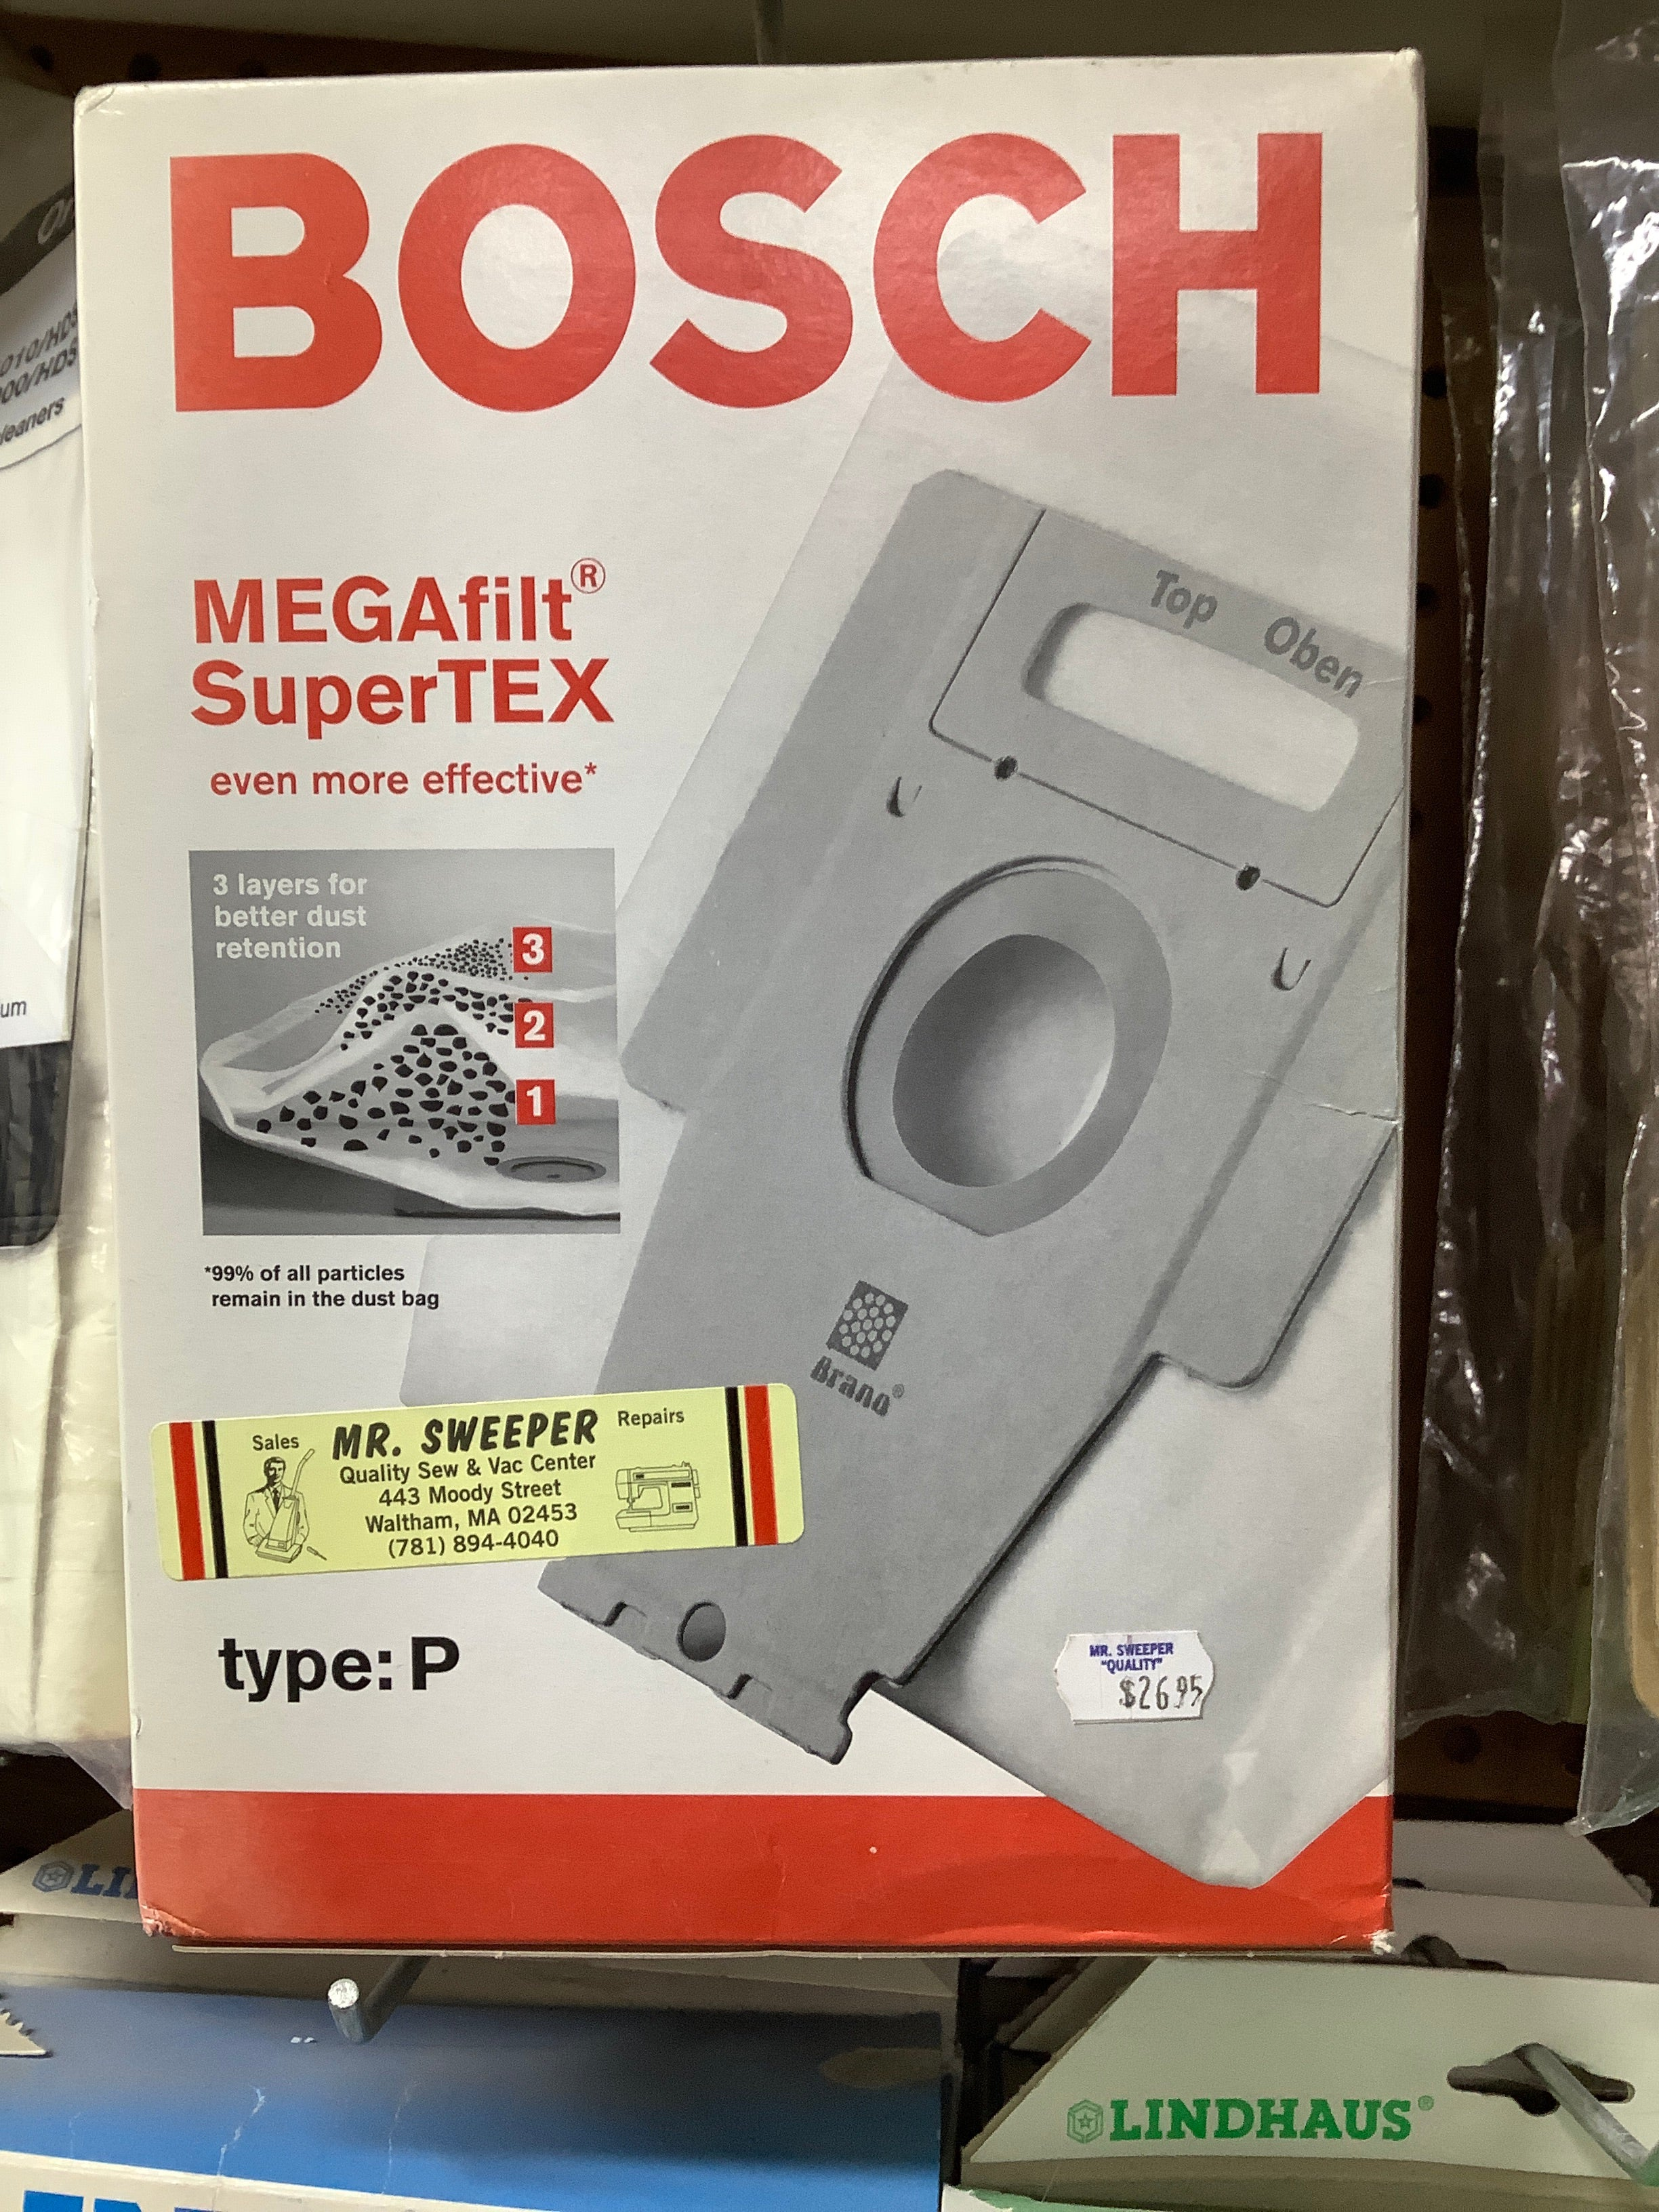 Bosch MEGafilf SuperTEX  type P